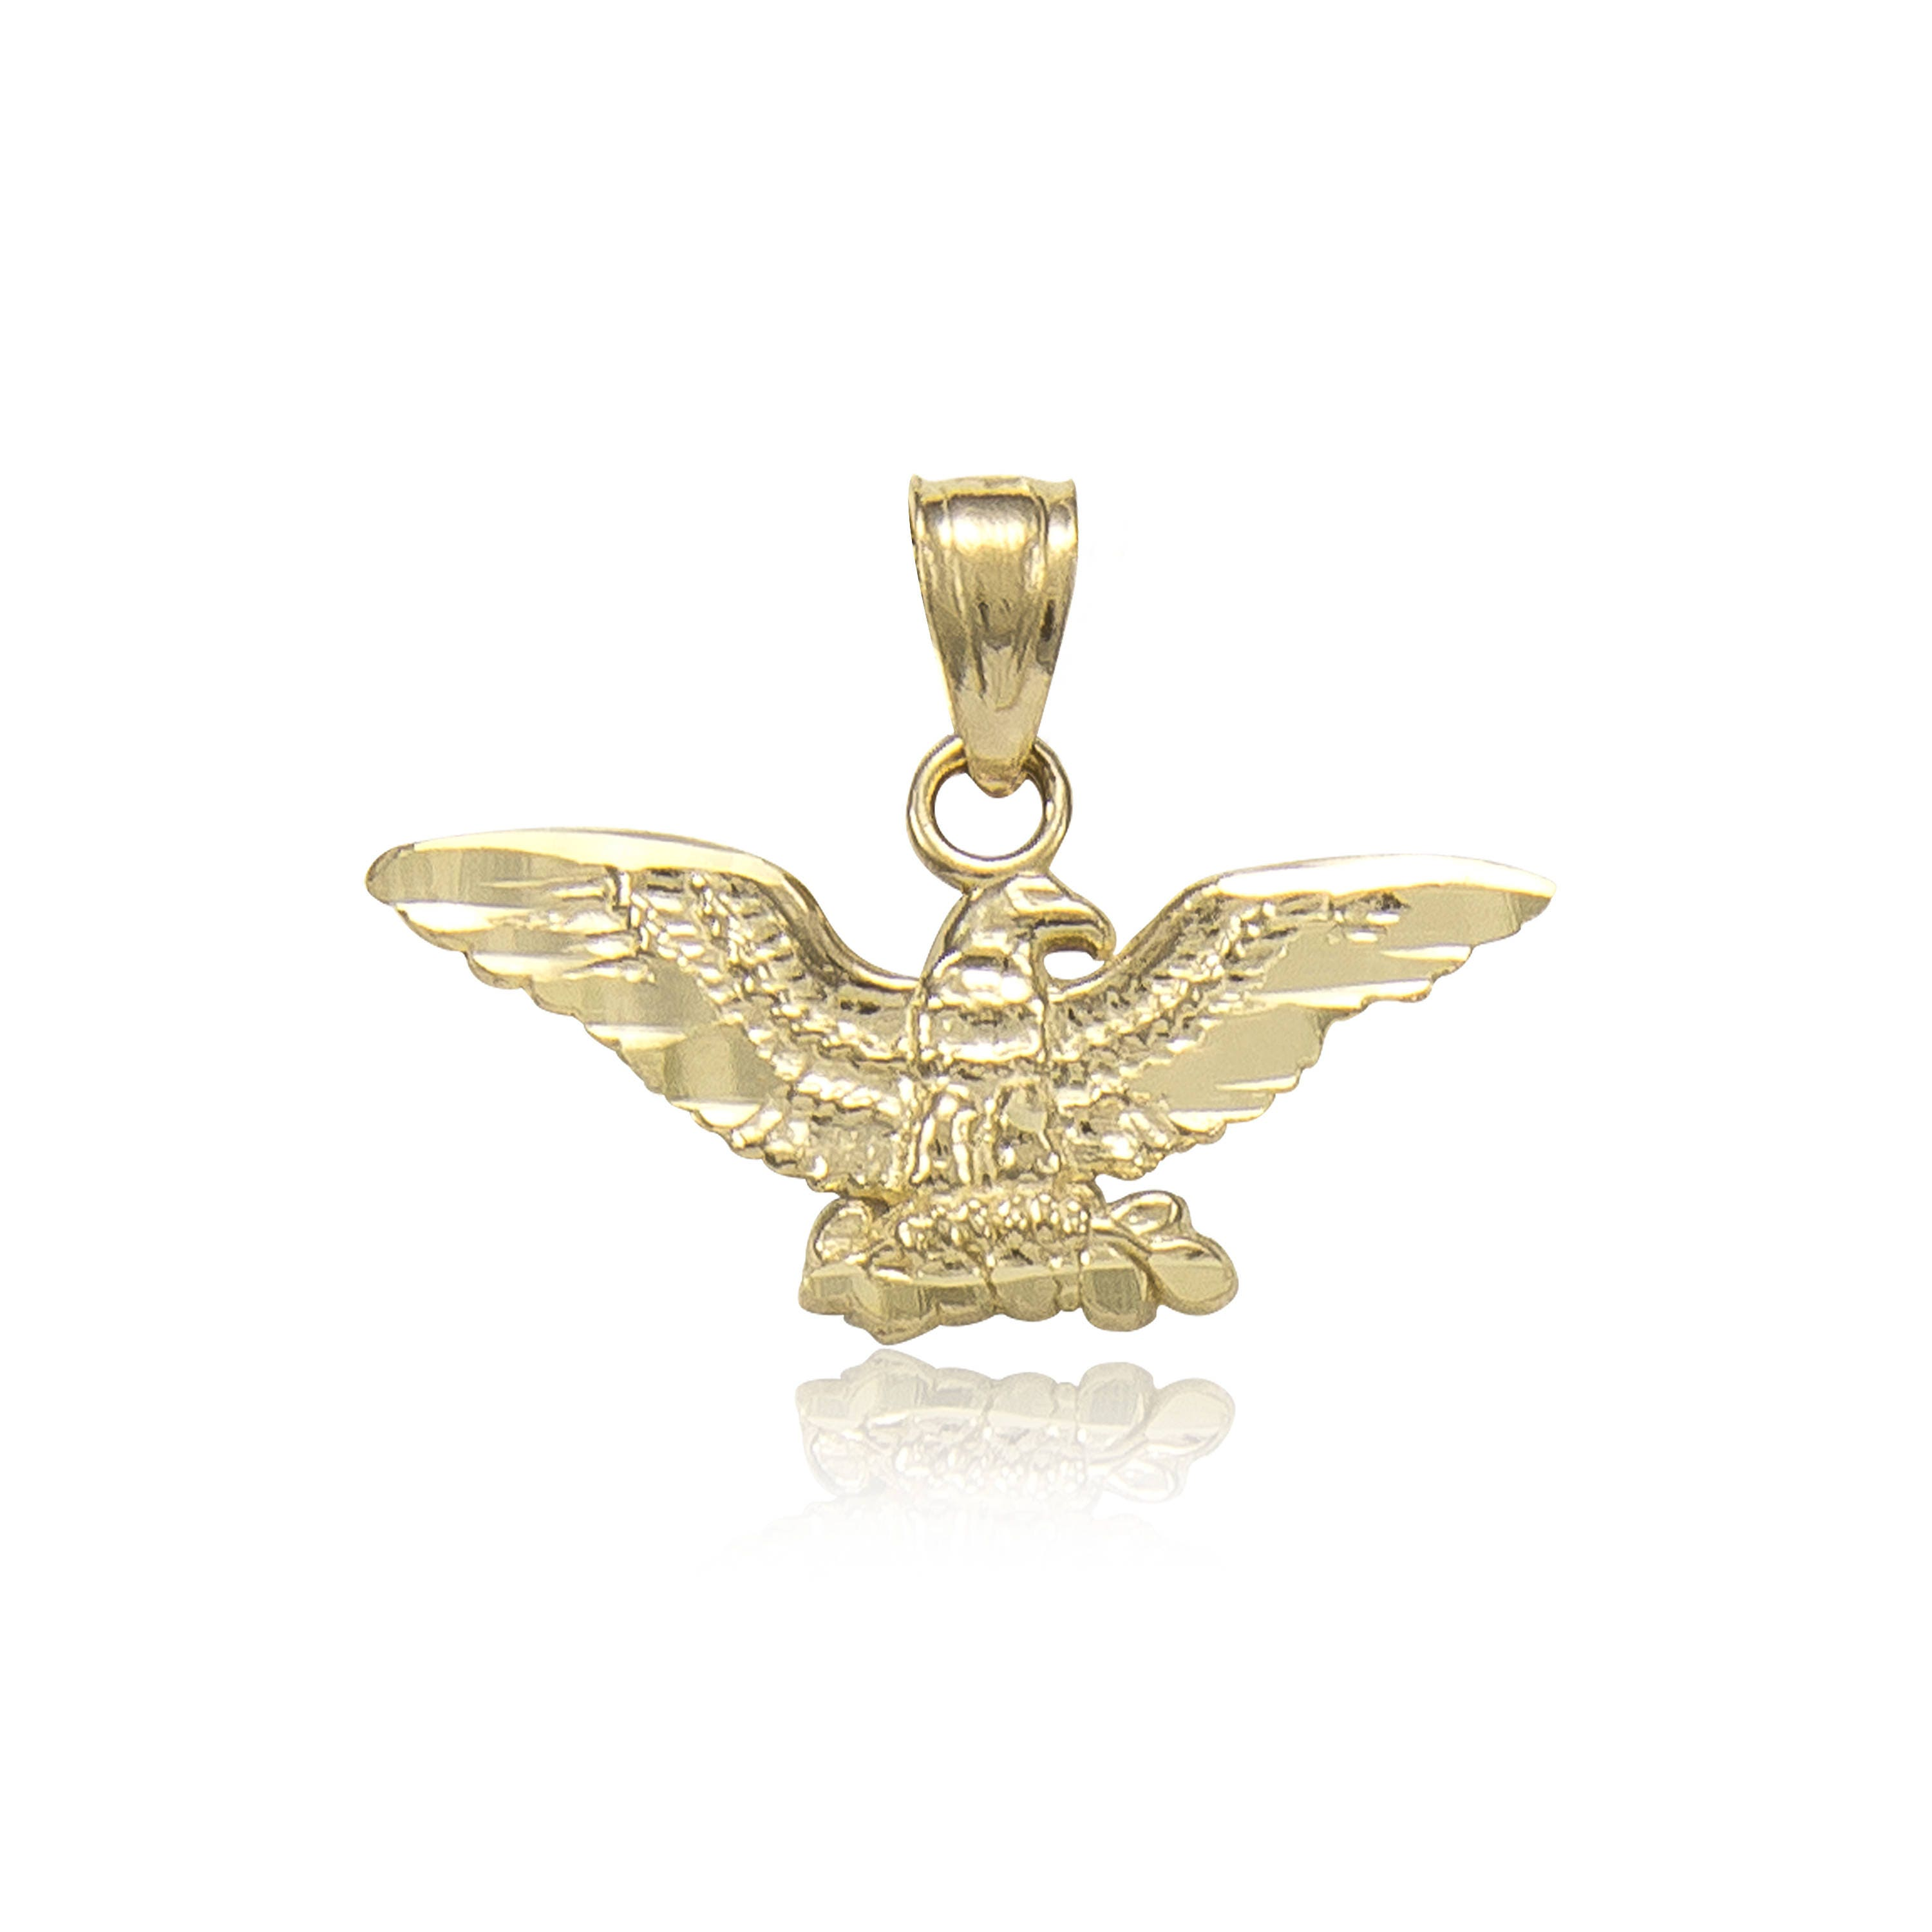 14k solid yellow gold eagle pendant flying bird diamond cut 14k solid yellow gold eagle pendant flying bird diamond cut necklace charm aloadofball Images